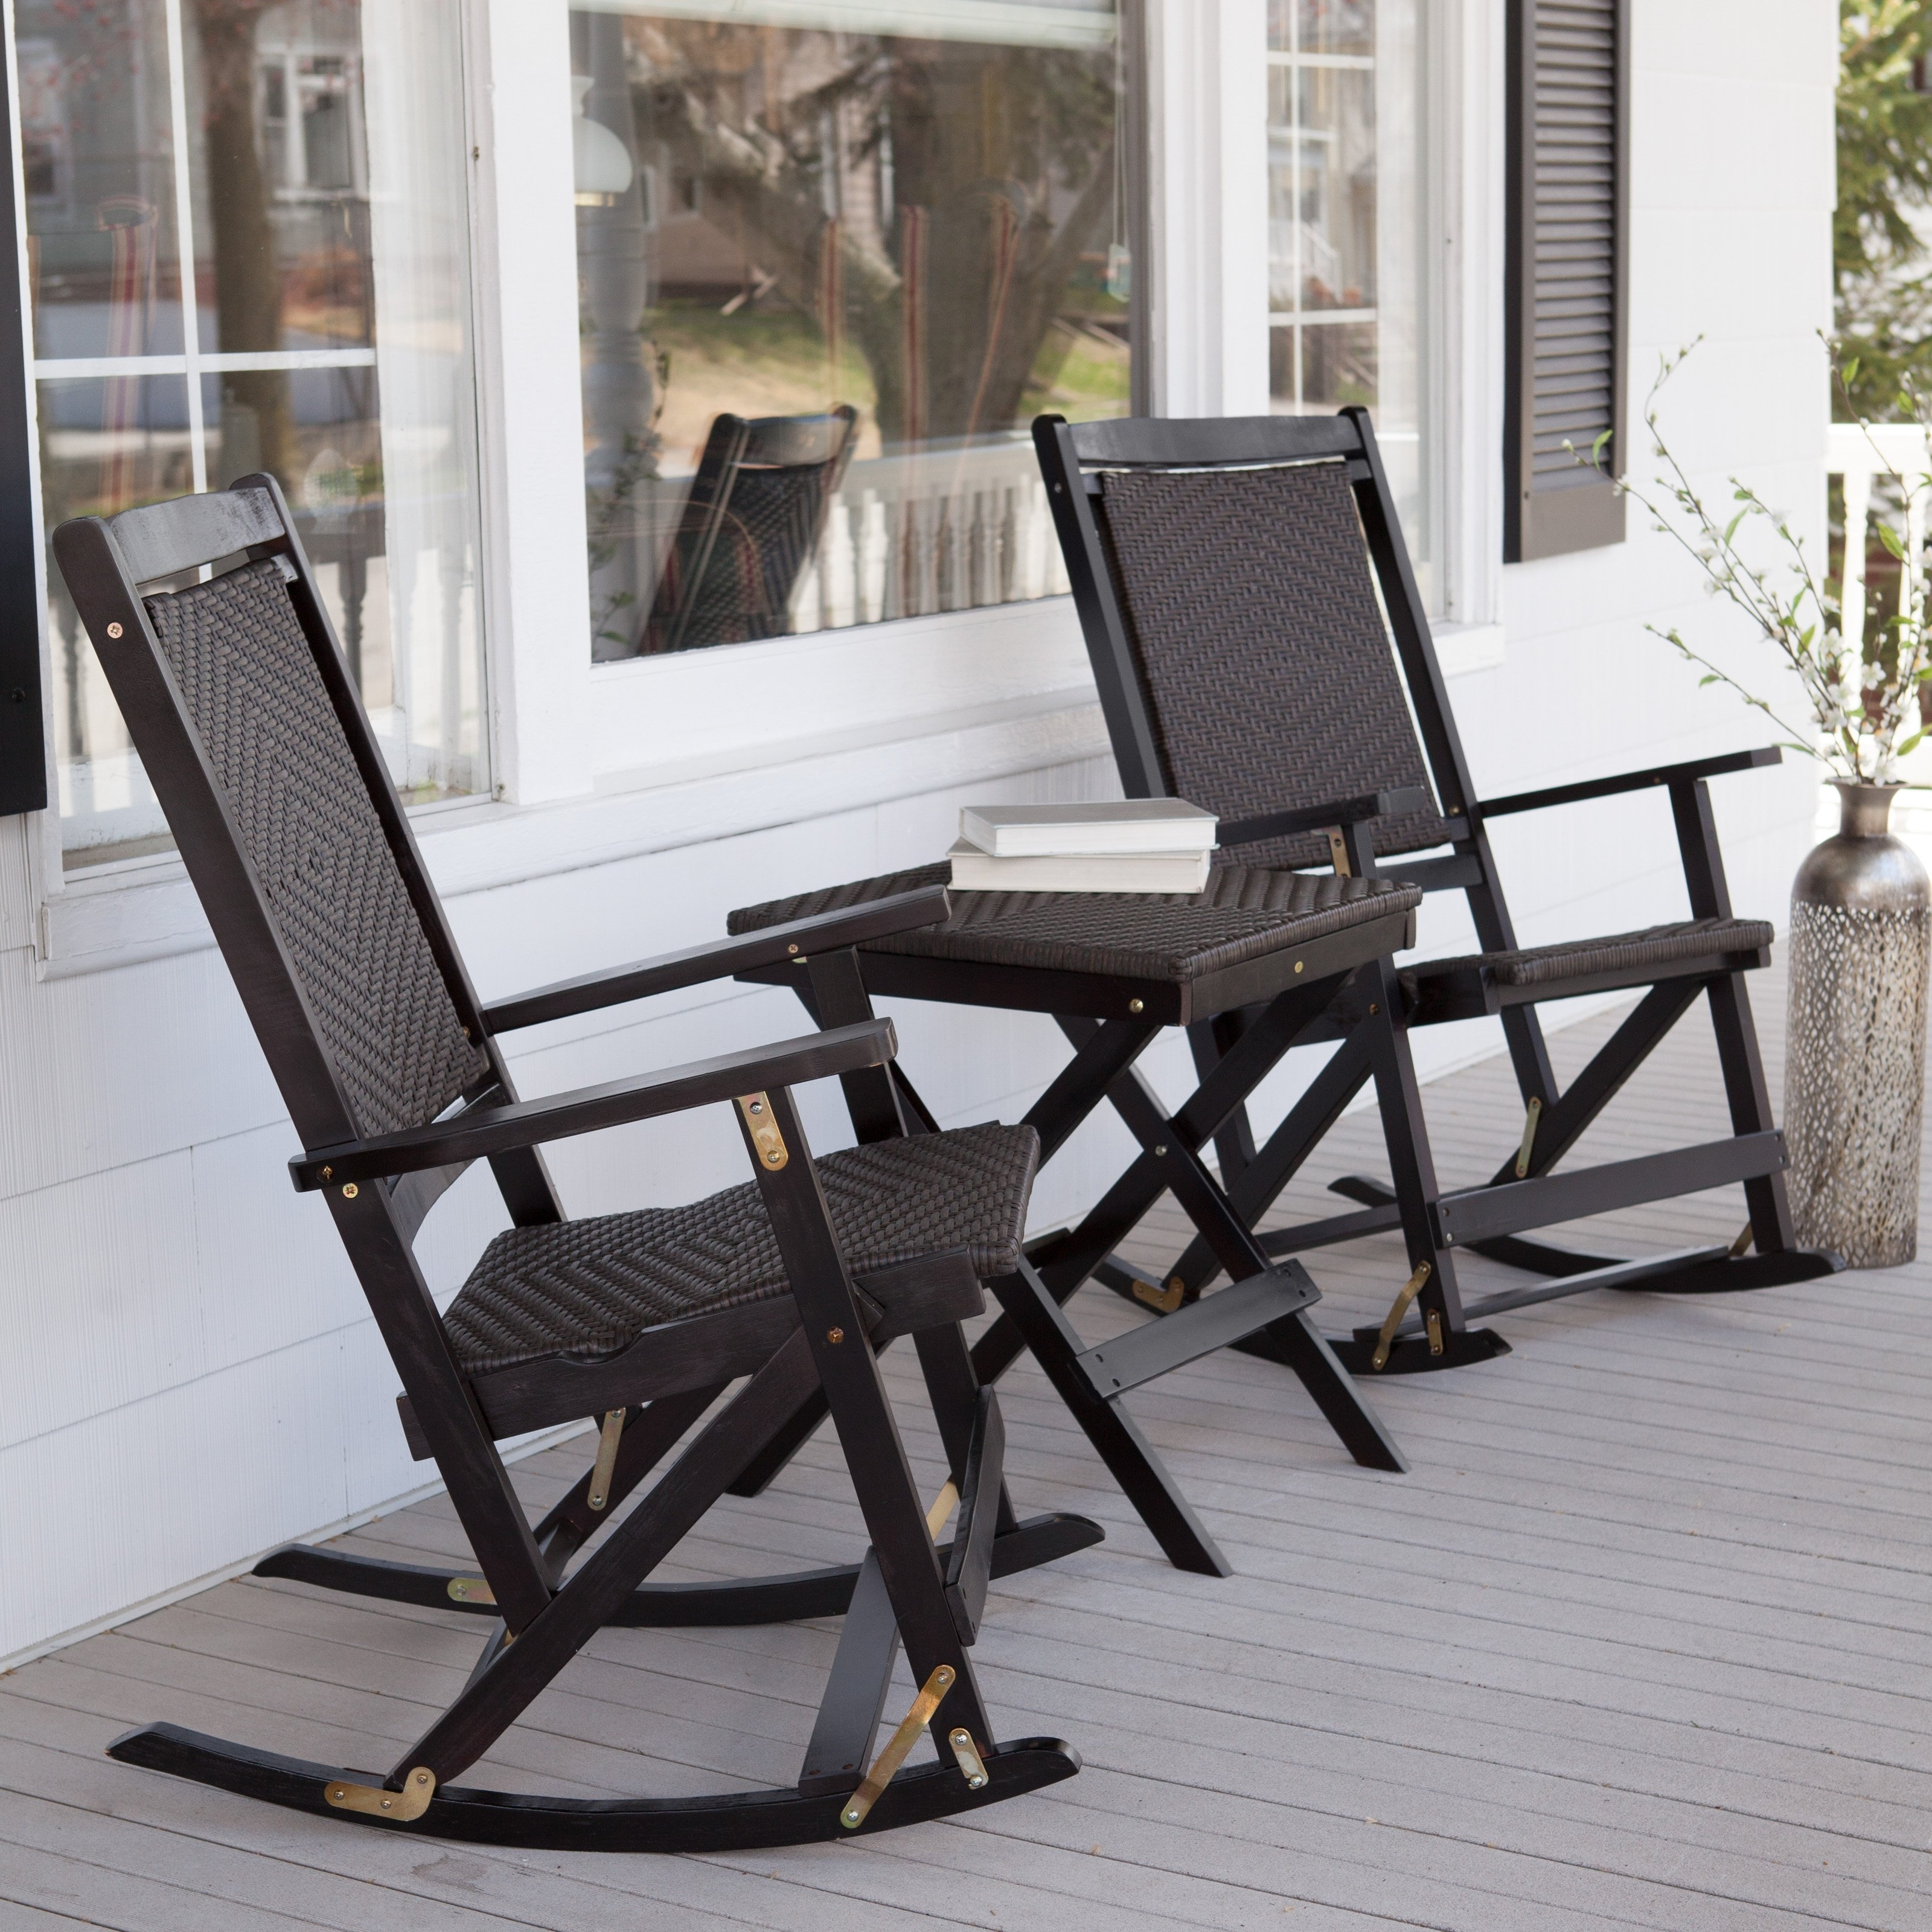 Black Patio Rocking Chairs With Most Up To Date Black Wicker Rocking Chair With Black Stained Wooden Based Combined (View 11 of 20)